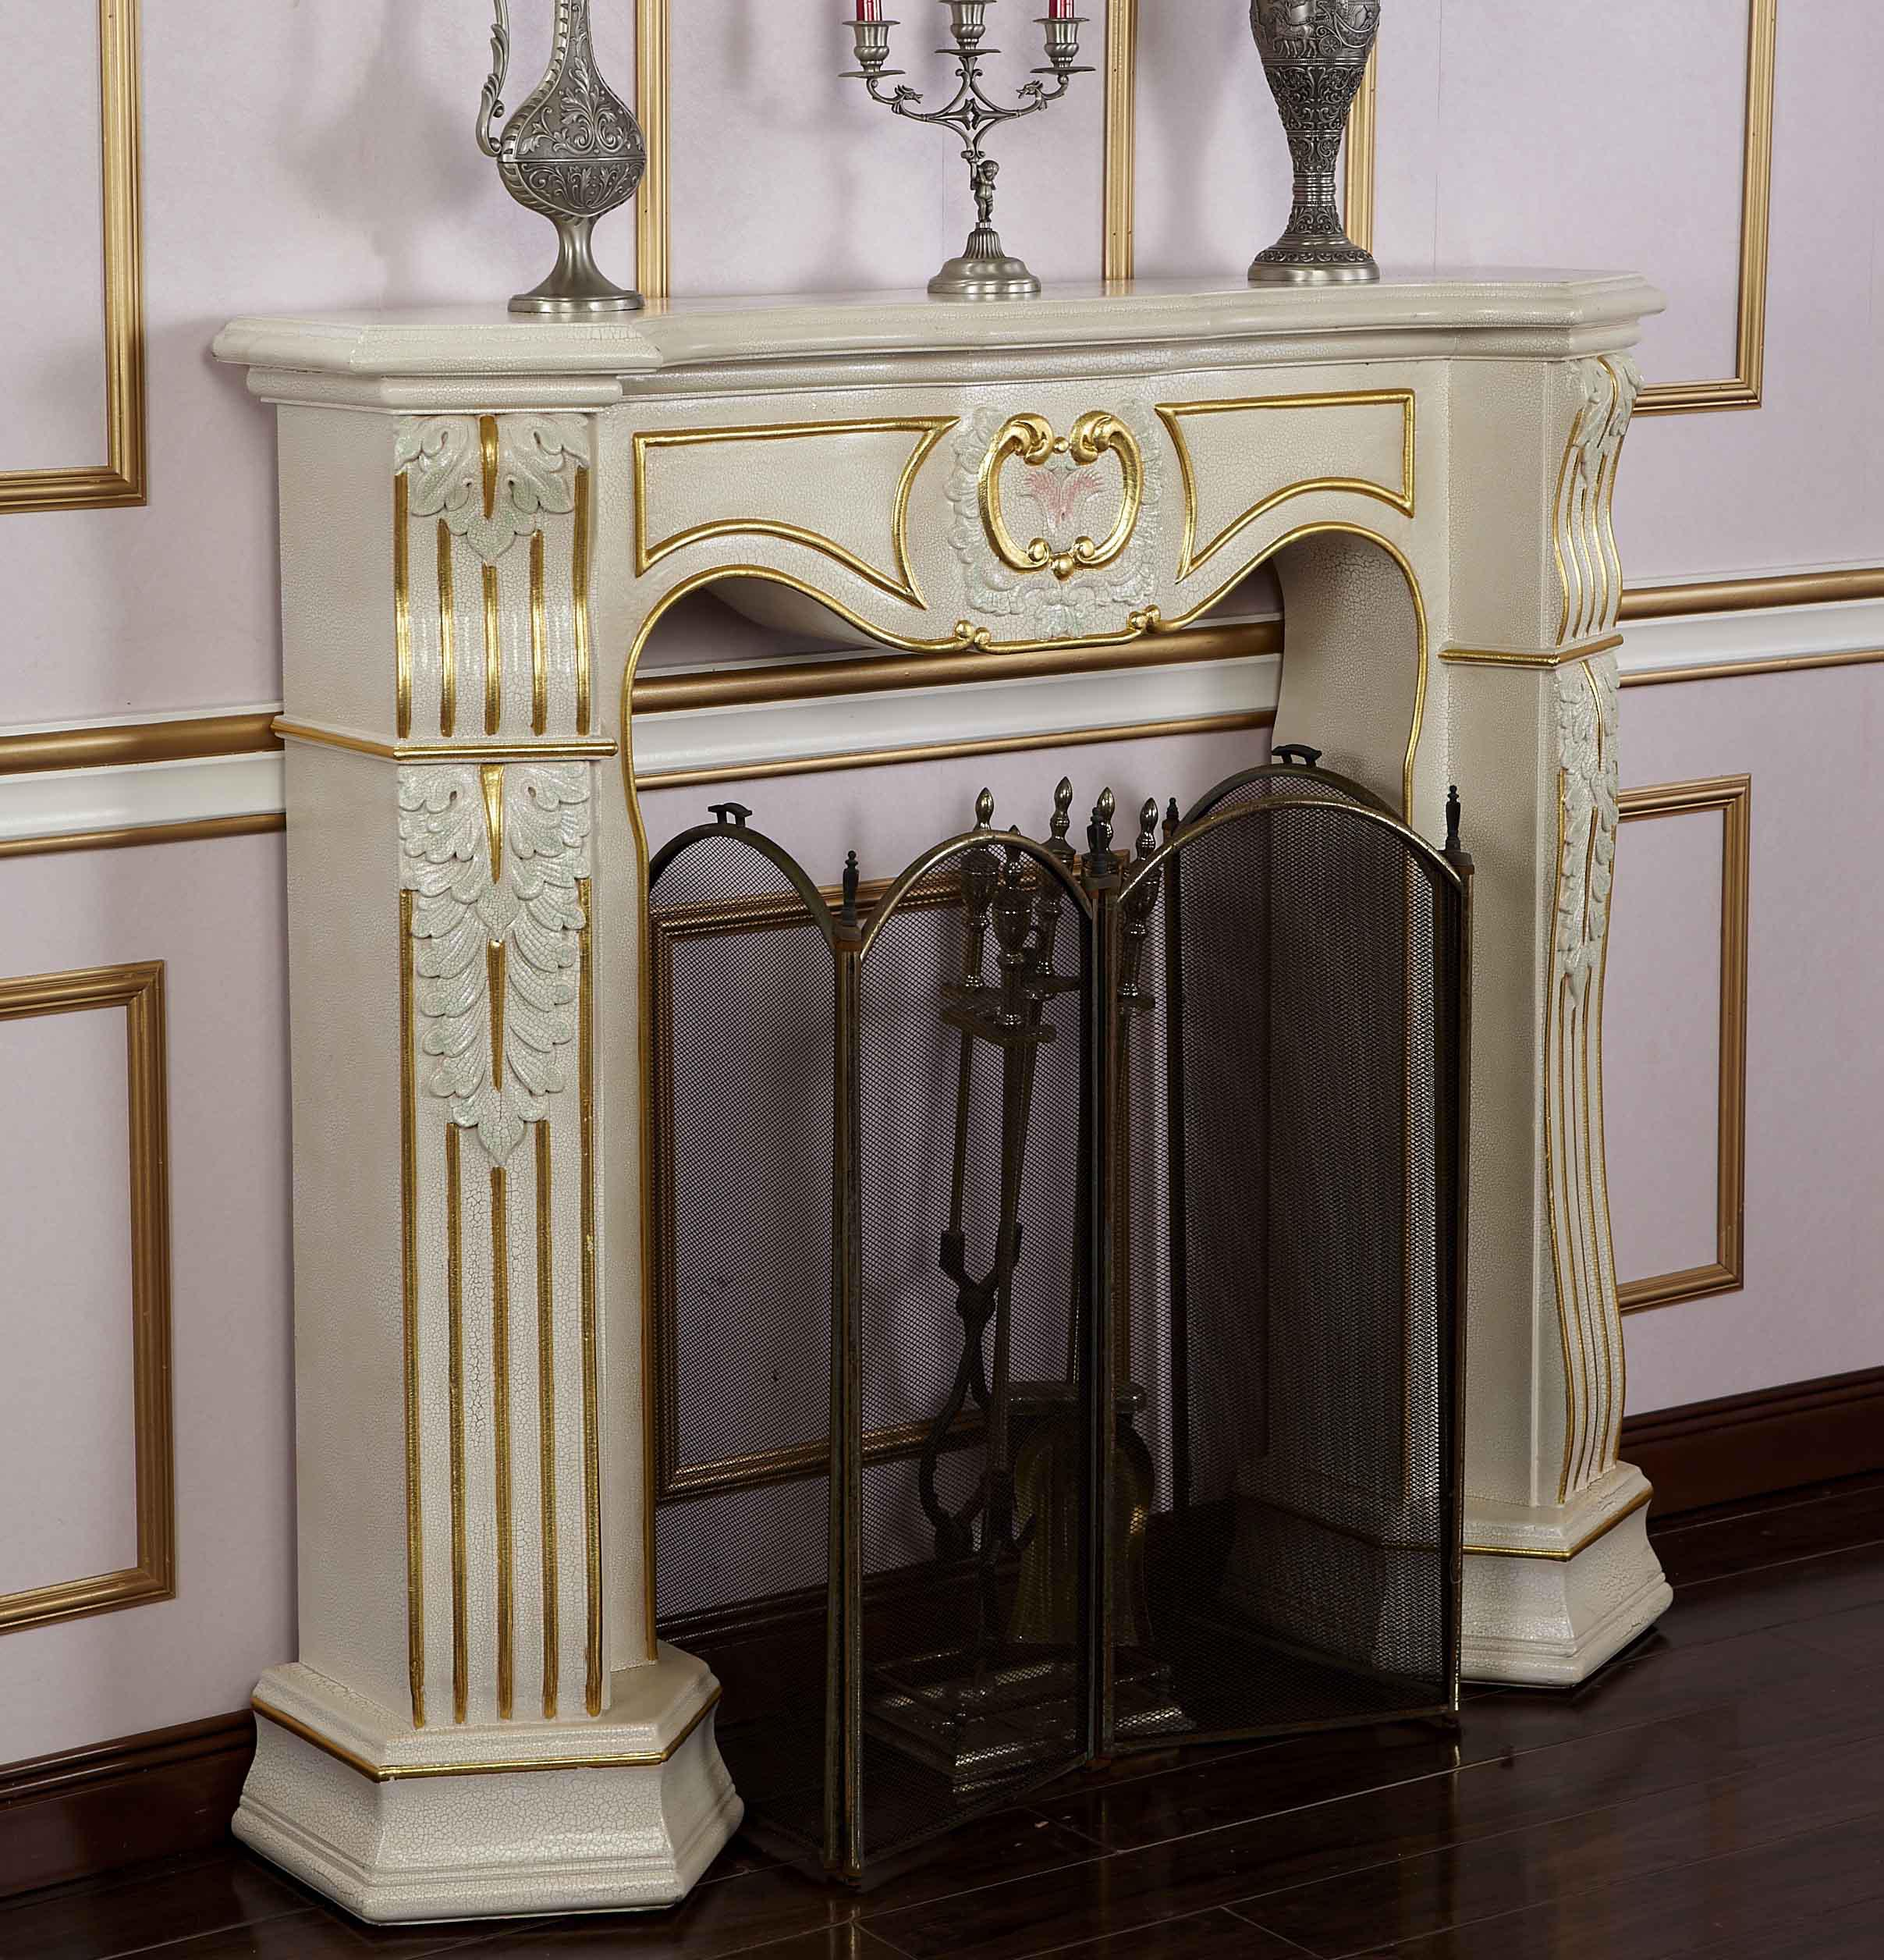 fireplace librarian hand furniture limestone traditional mantels the carved italian as style pieces century mantle of antique